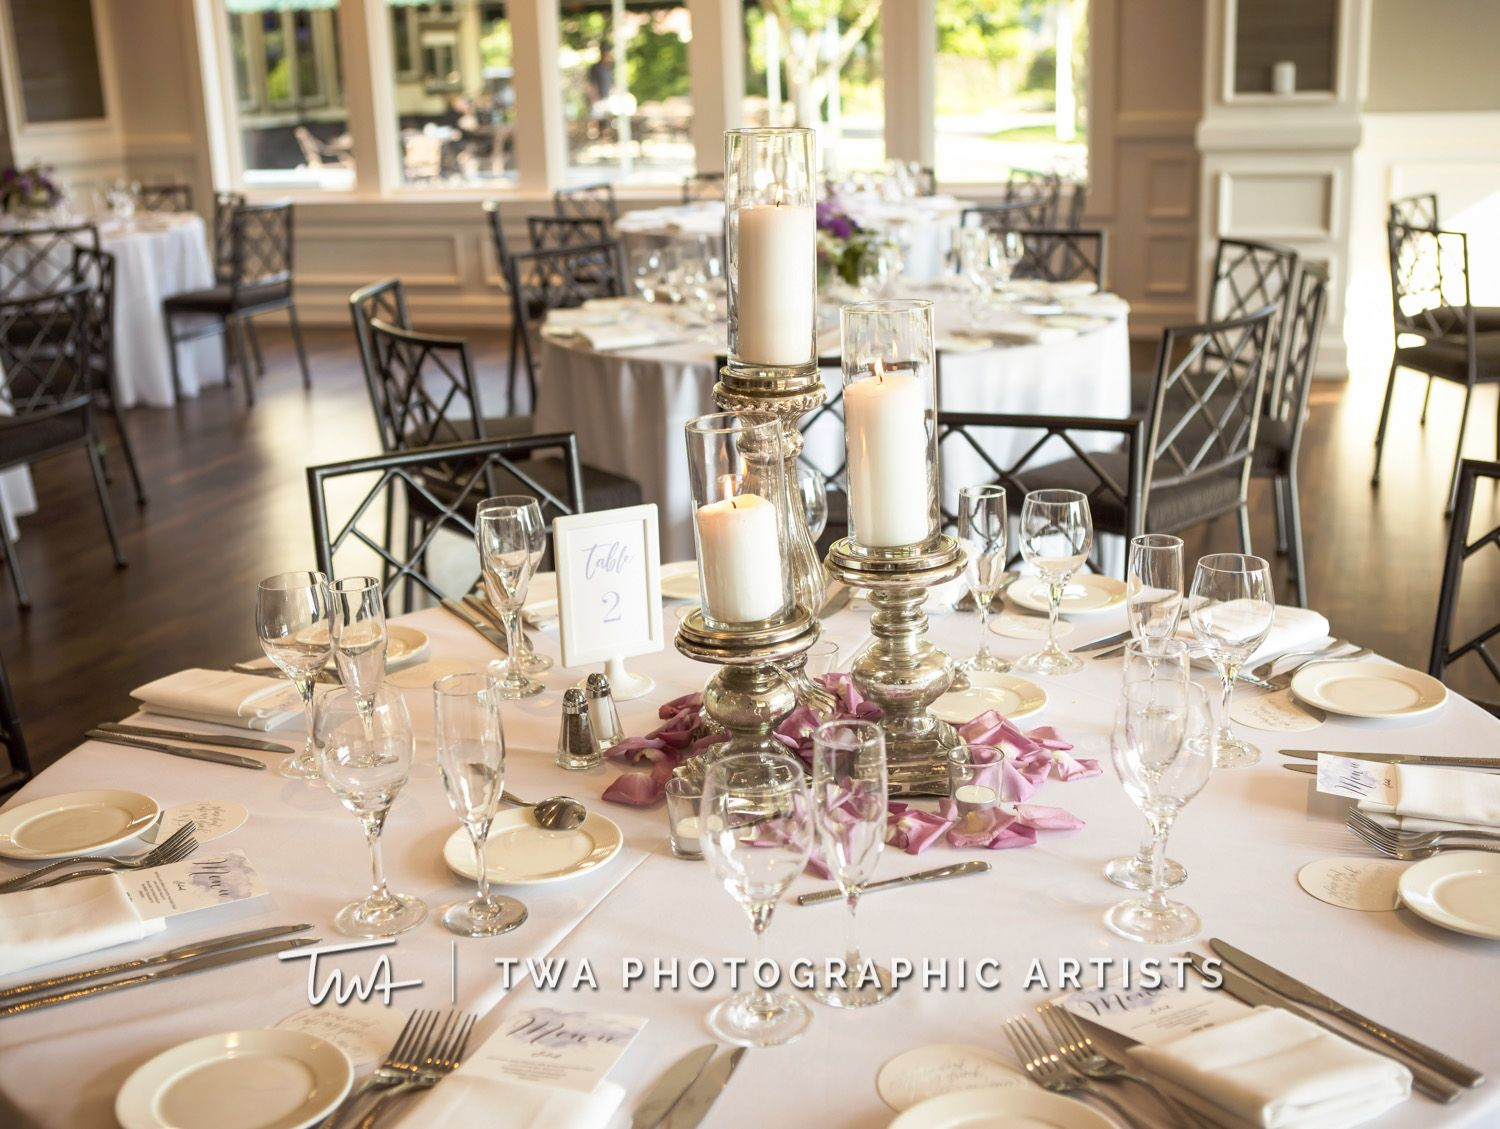 Twa Photographic Artists Weddings At Chevy Chase Click The Photo To See Our Website Photographic Artist Chevy Chase Country Club Table Decorations